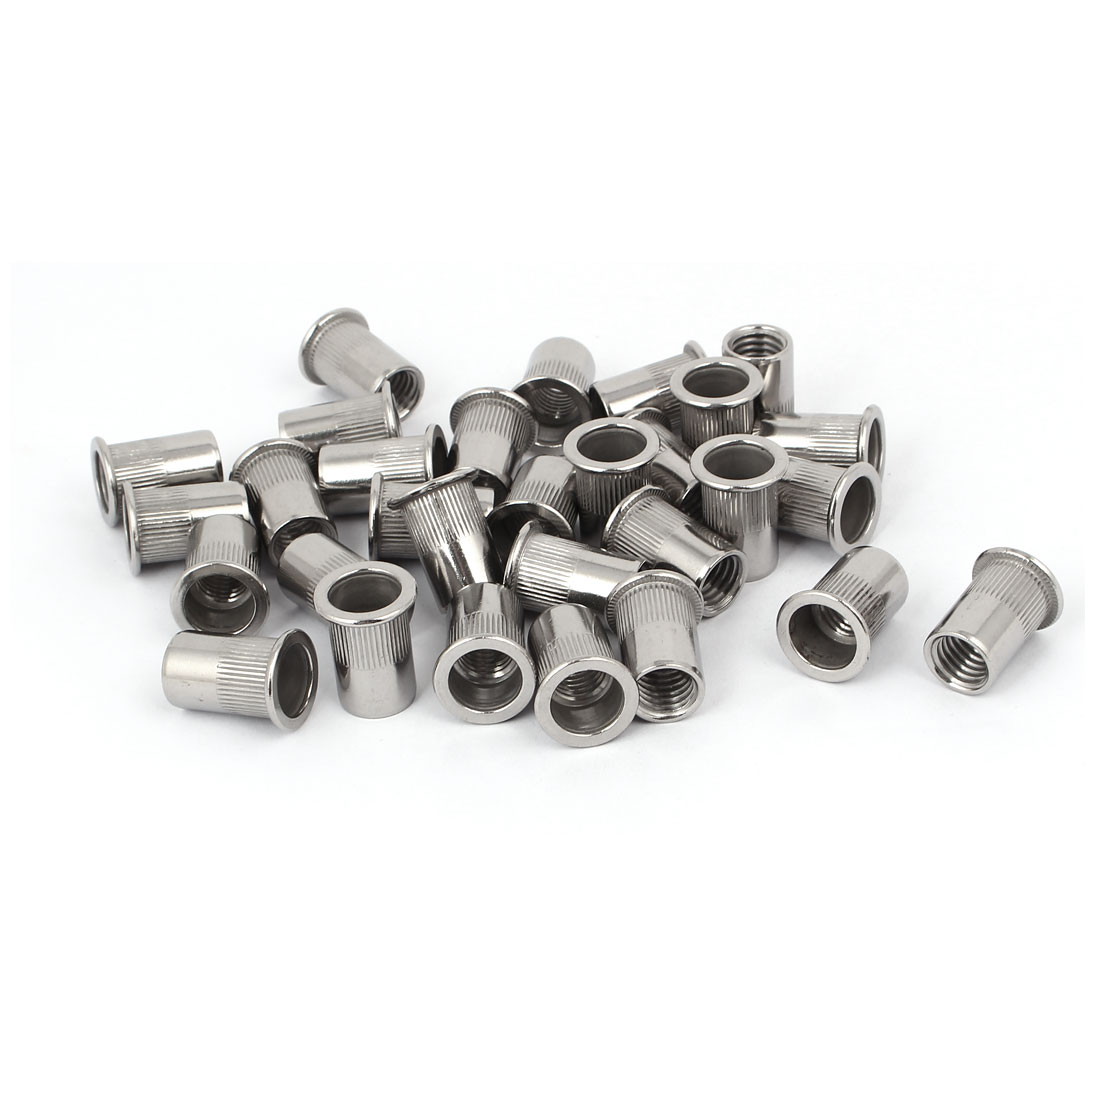 M12 x 1.75mm 304 Stainless Steel Rivet Nut Embedded Insert Nutsert 30PCS